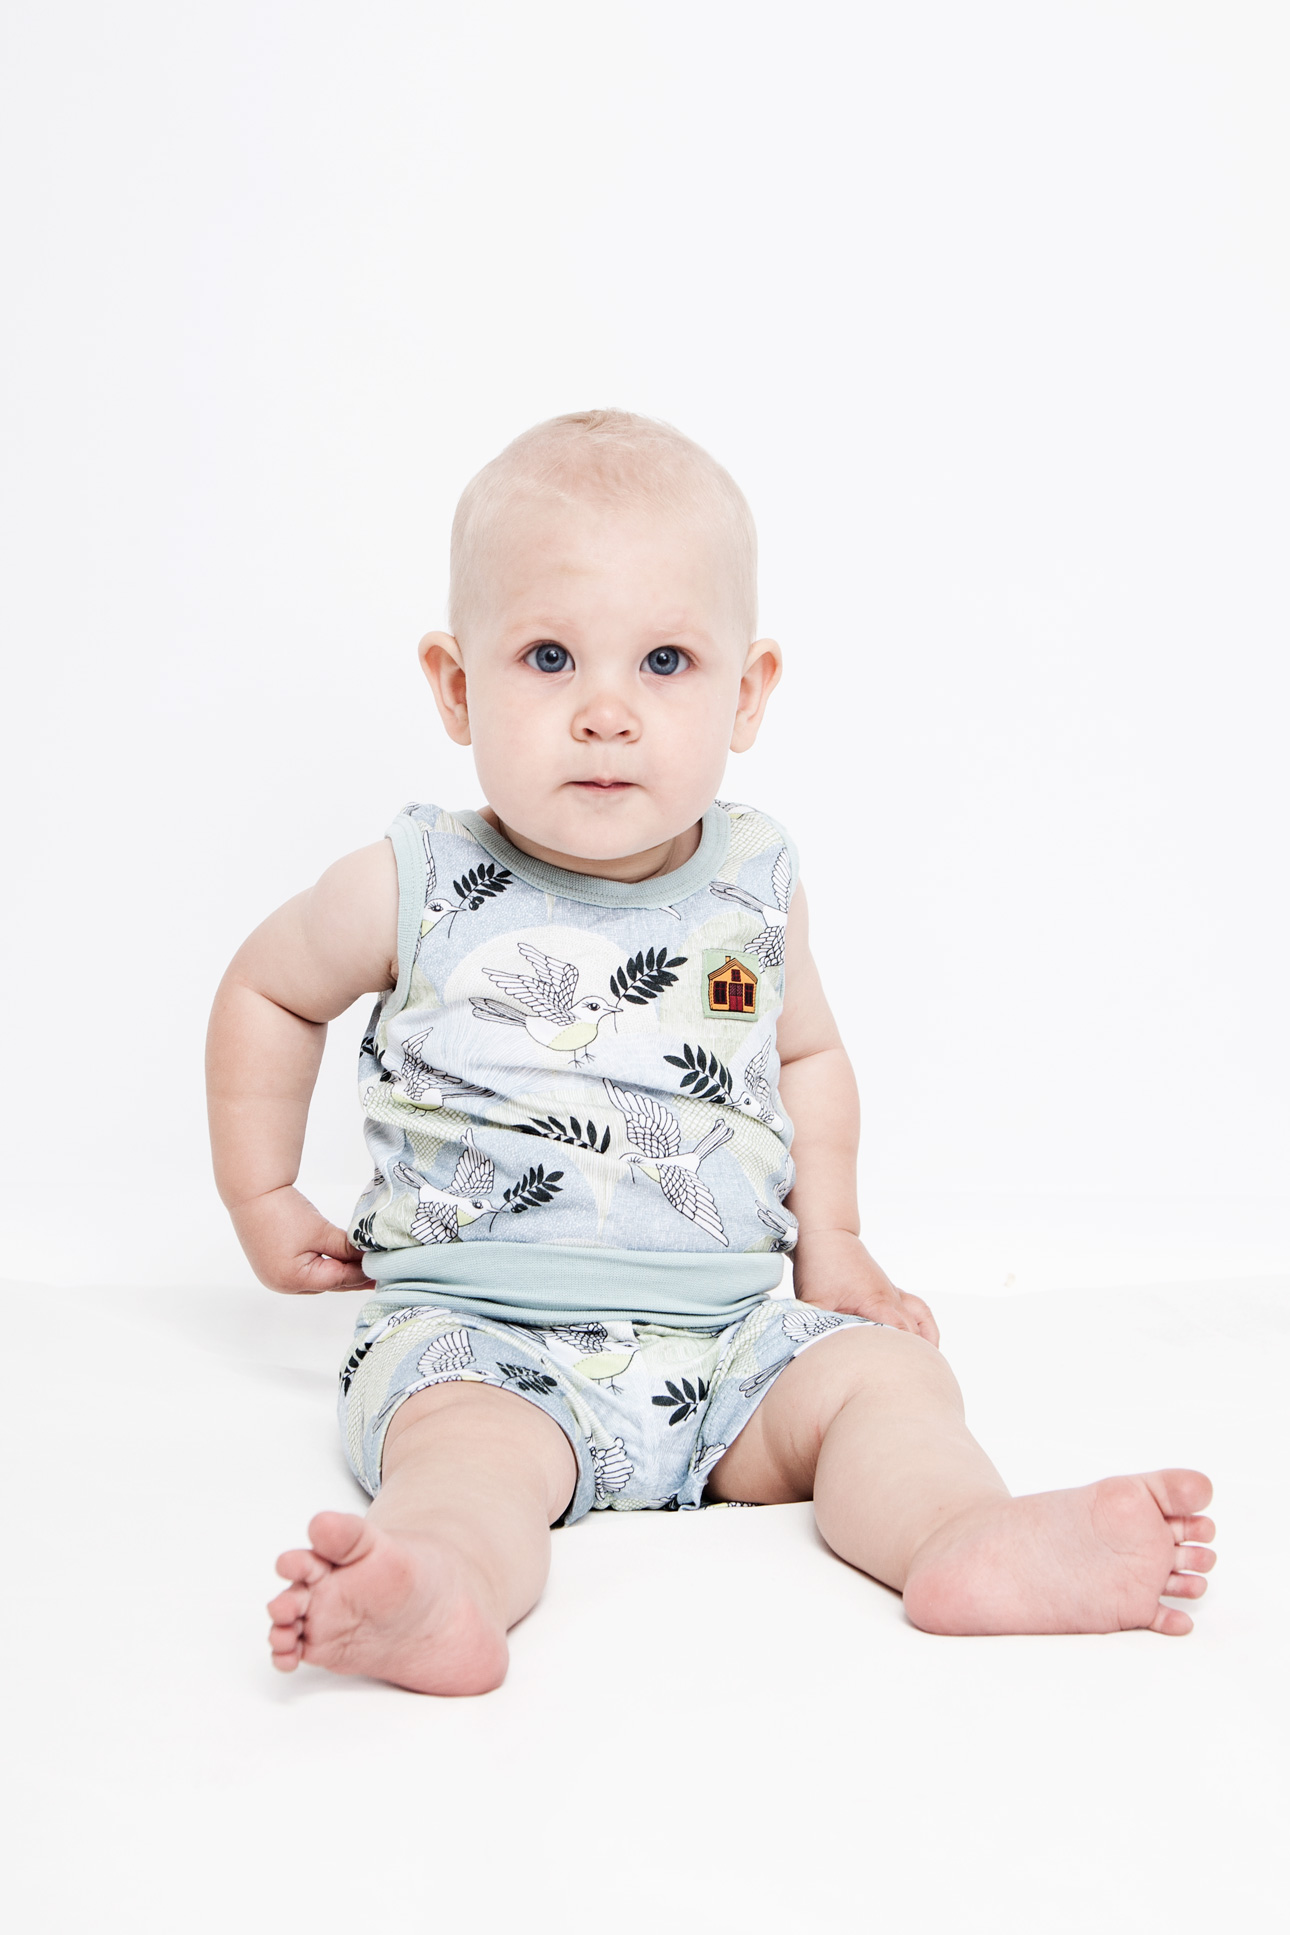 Modeerska Huset ss16 peace please baby